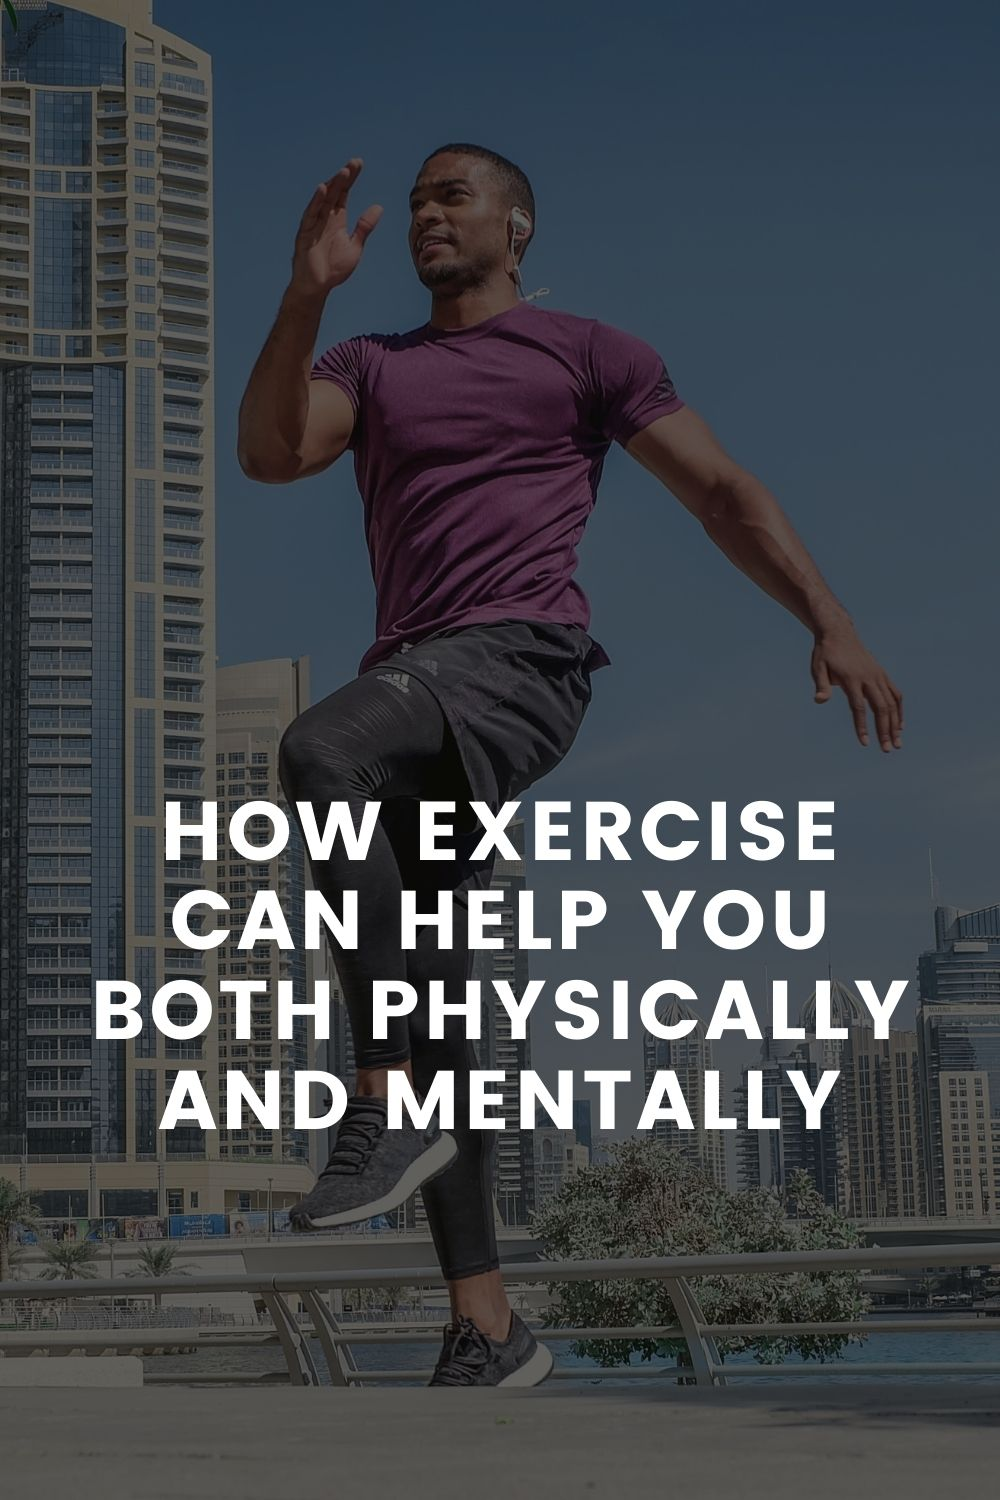 How Exercise Can Help You Both Physically and Mentally